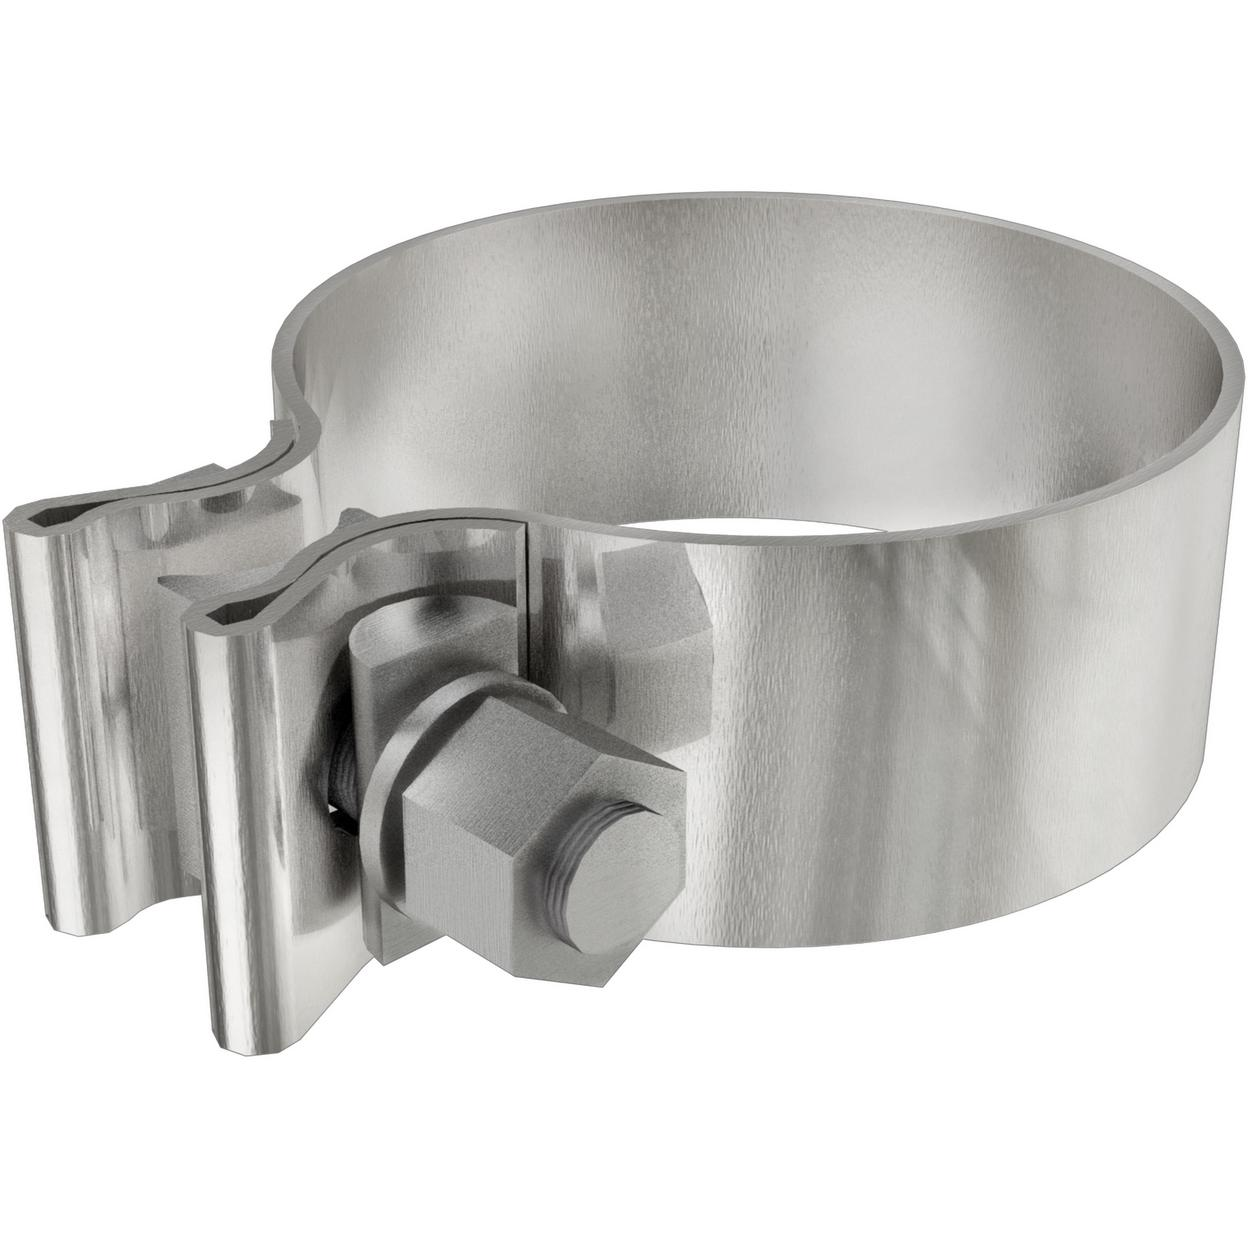 Lap Joint Band Clamp - 2.75in.